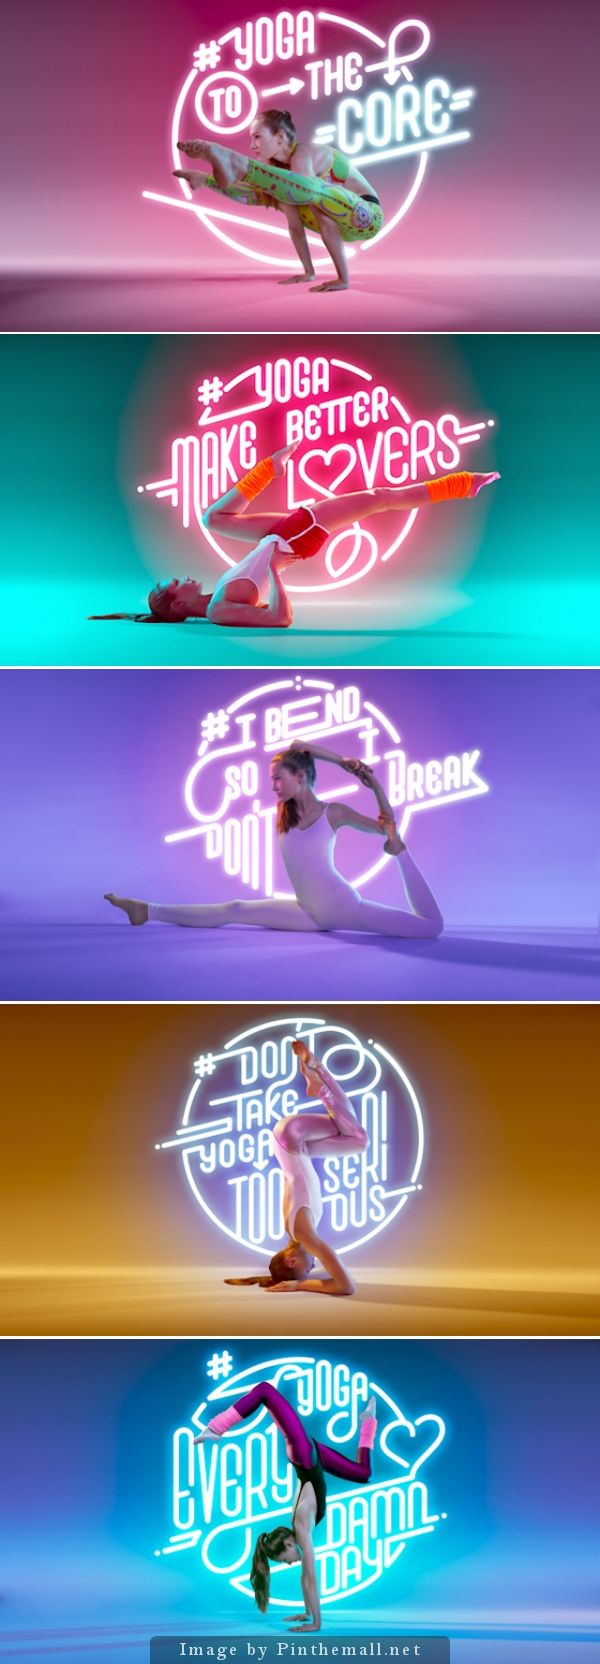 #photography #inspiration | Yoga To The Core | Neon light shot by Allemand Björn Ewers of Studio 314